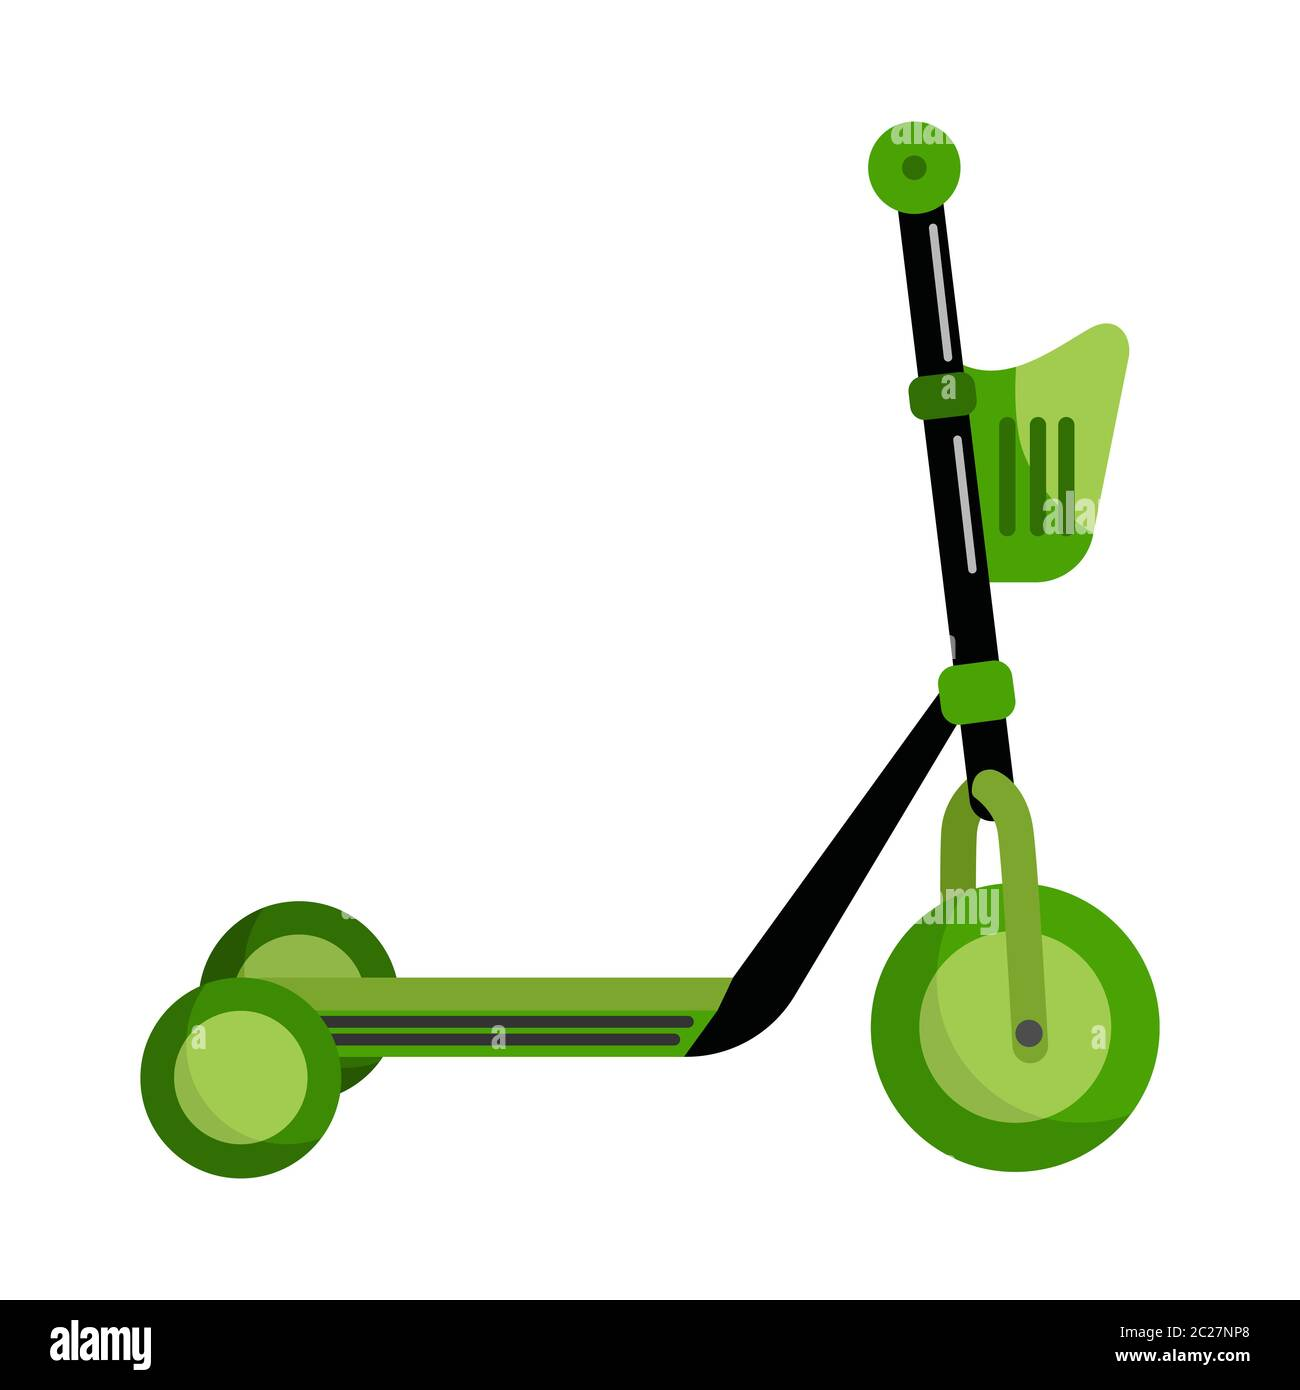 Green Kick Scooter With A Basket Isolated On White Background Push Scooter Transportation In Flat Style Eco Transport For Kids Vector Illustration Stock Vector Image Art Alamy